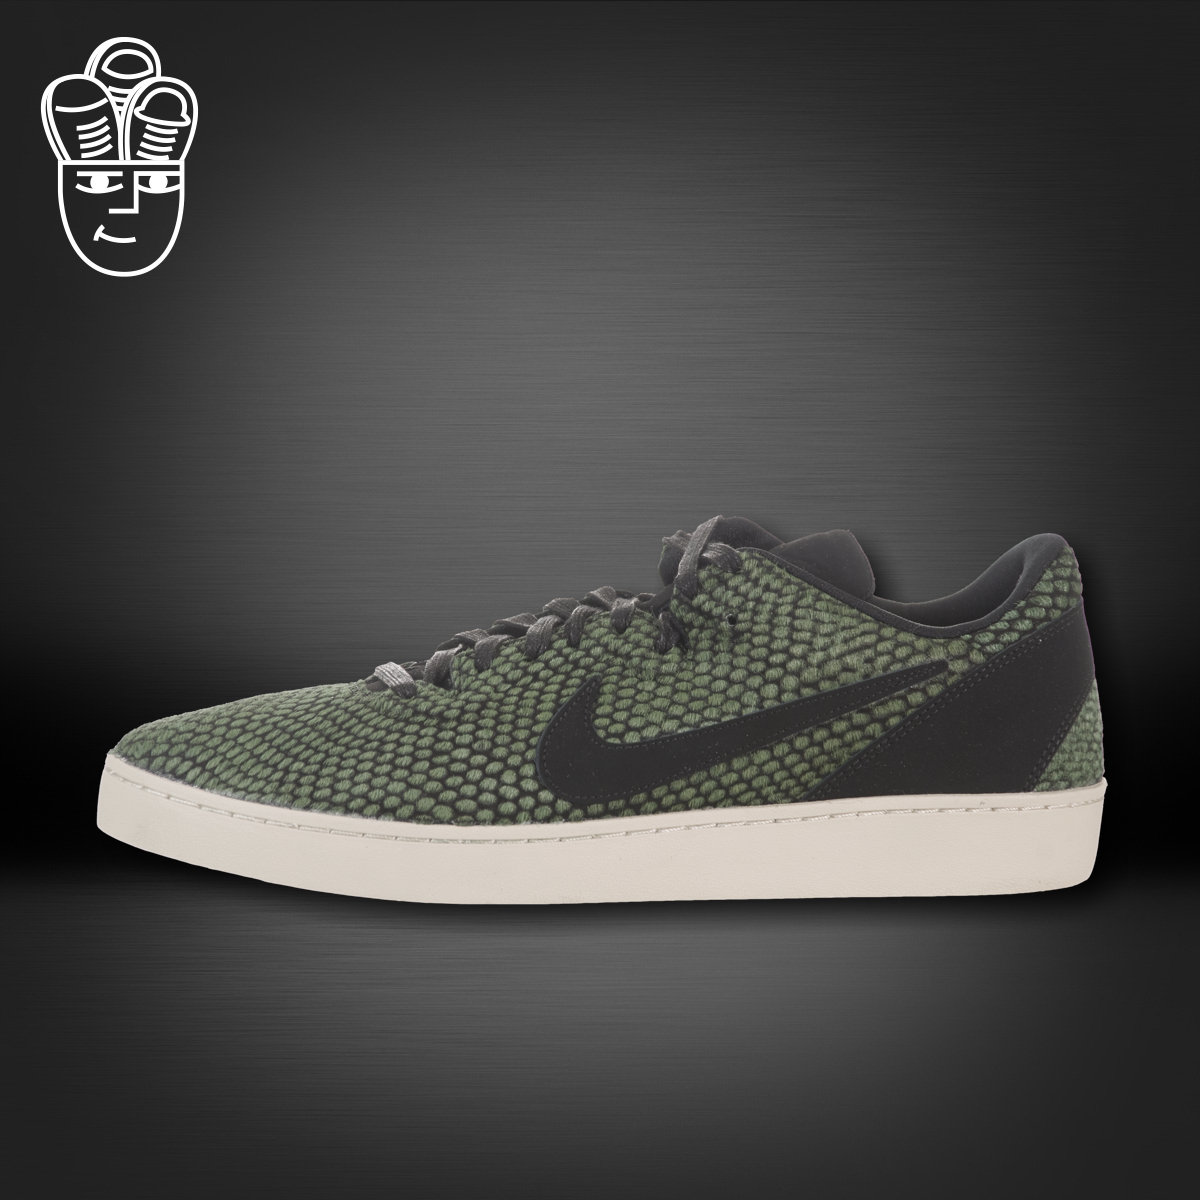 best website 5f4bb 822c9 Get Quotations · Nike nike kobe 8 kobe nsw 8 rainbow canvas shoes men s  casual shoes 582552-800